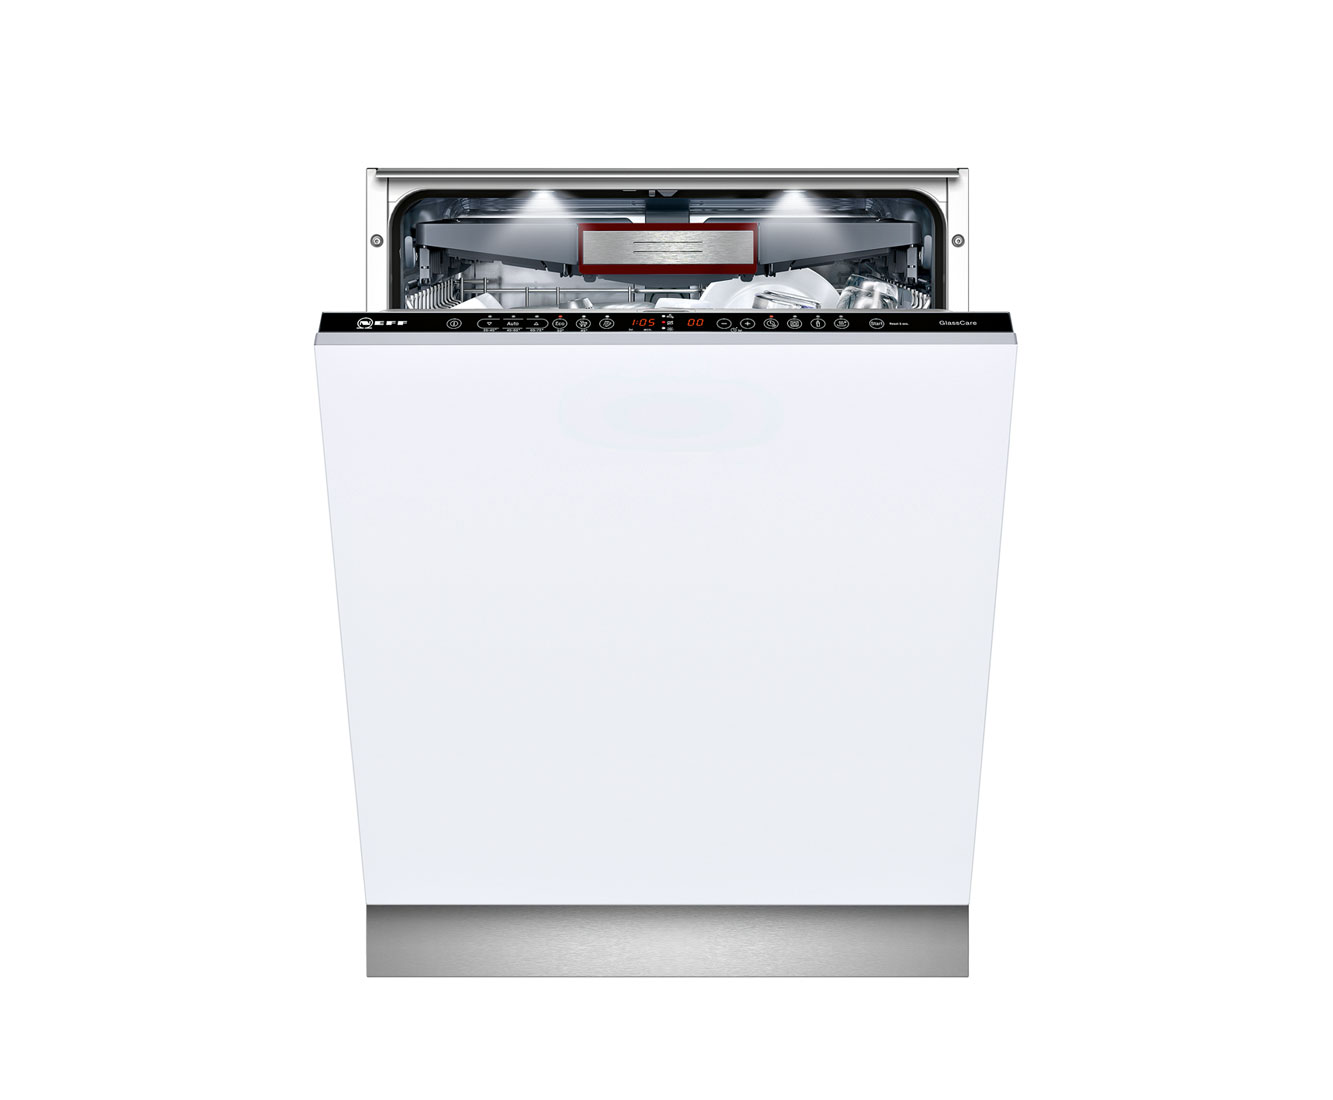 Neff S51T69X3GB Fully Integrated Standard Dishwasher - Stainless Steel